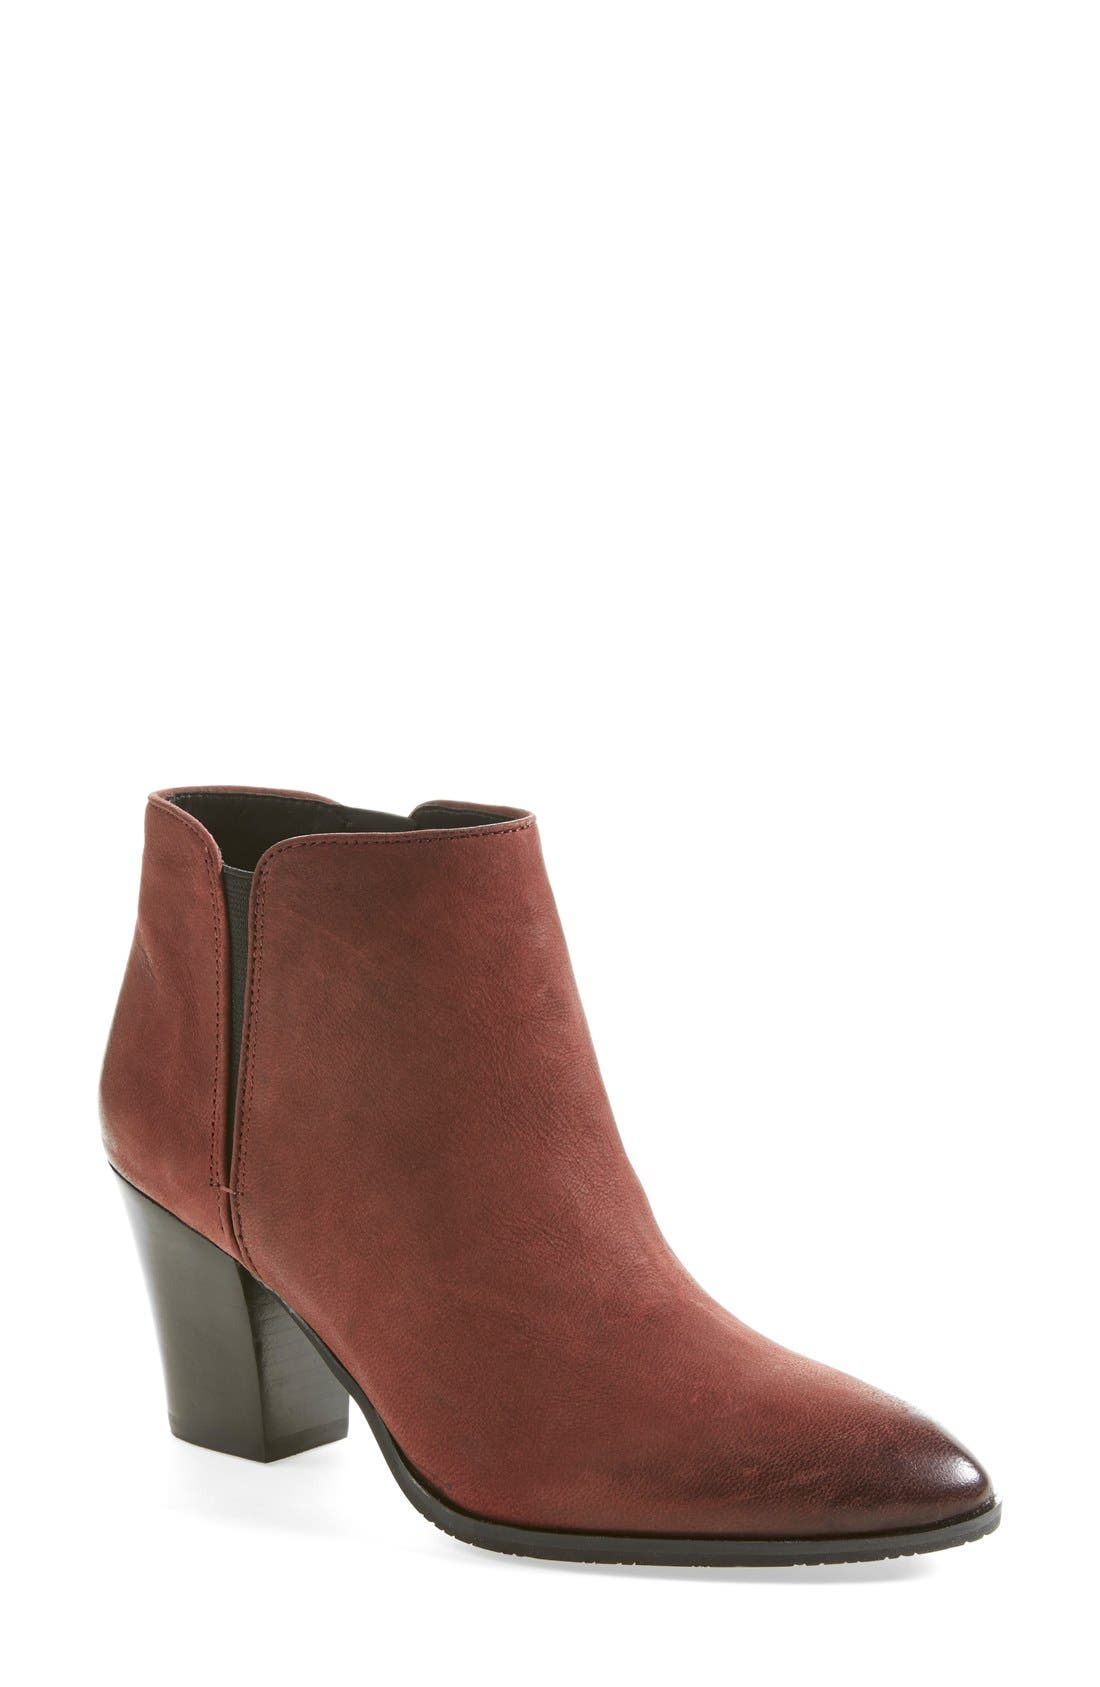 Main Image - Franco Sarto 'Agenda' Leather Bootie (Women)